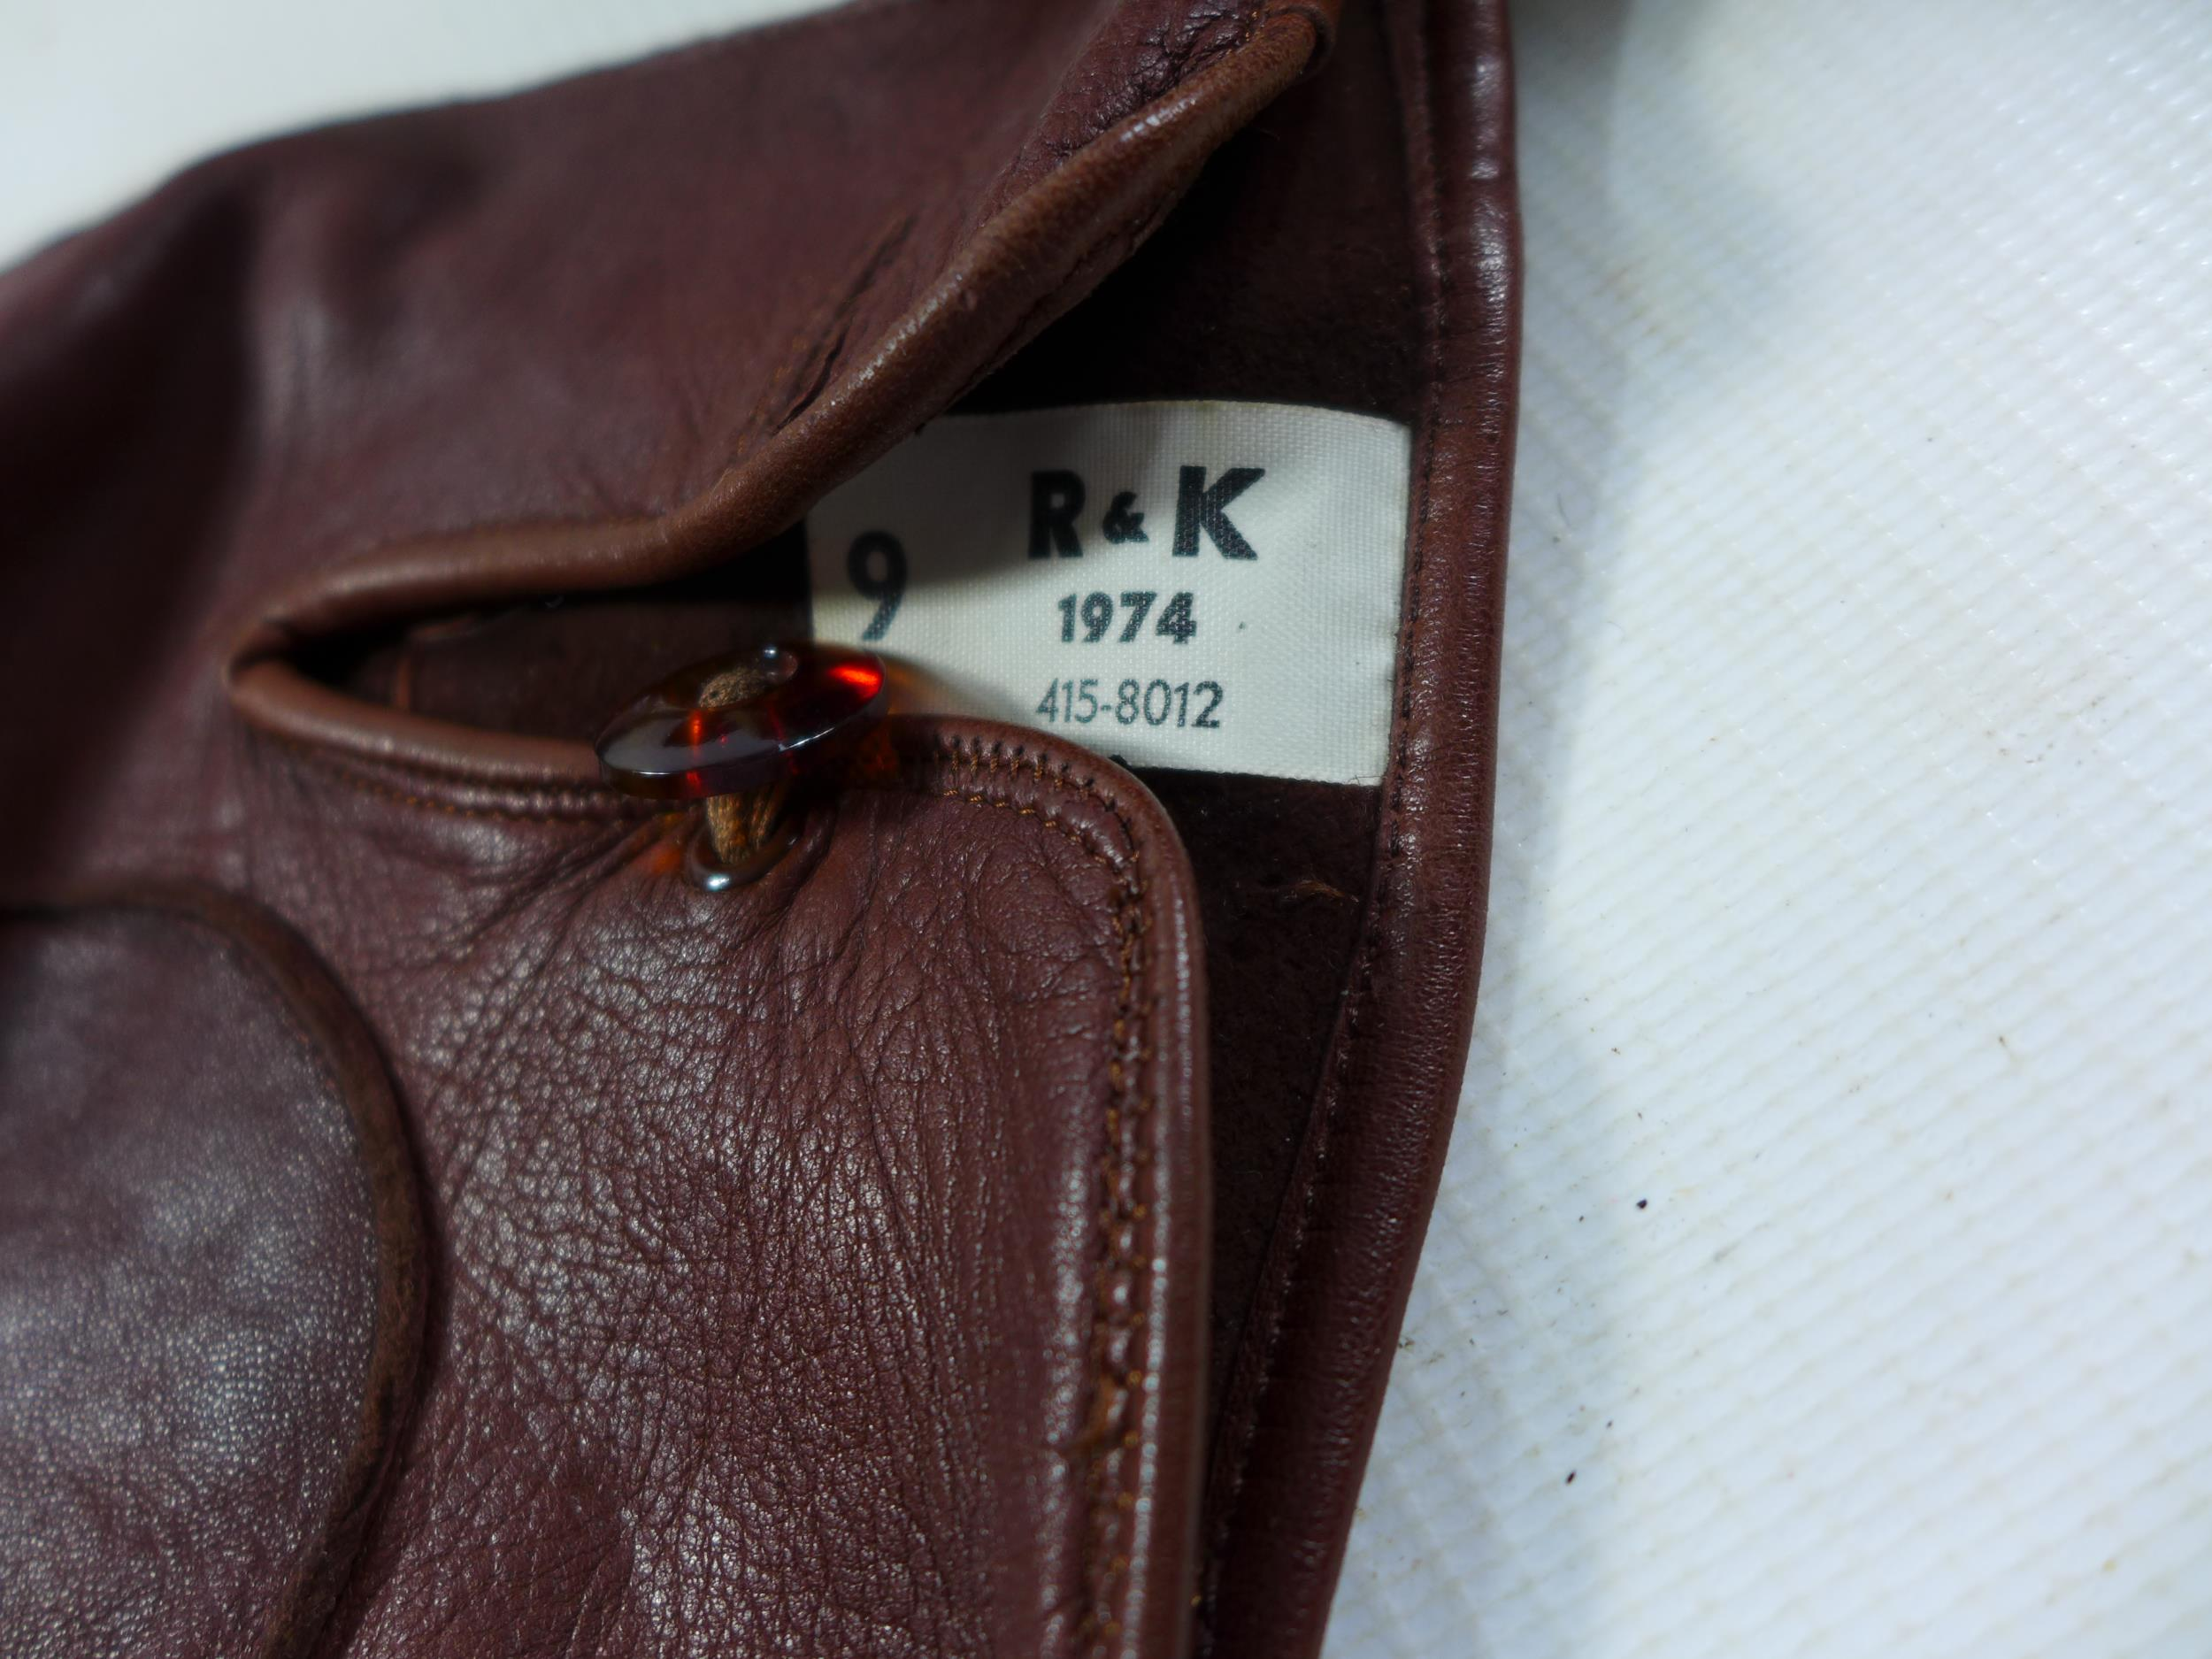 A COLLECTION OF RAF MEMORABILIA COMPRISING CAP, GLOVES, BELTS, FLASHES ETC - Image 6 of 6